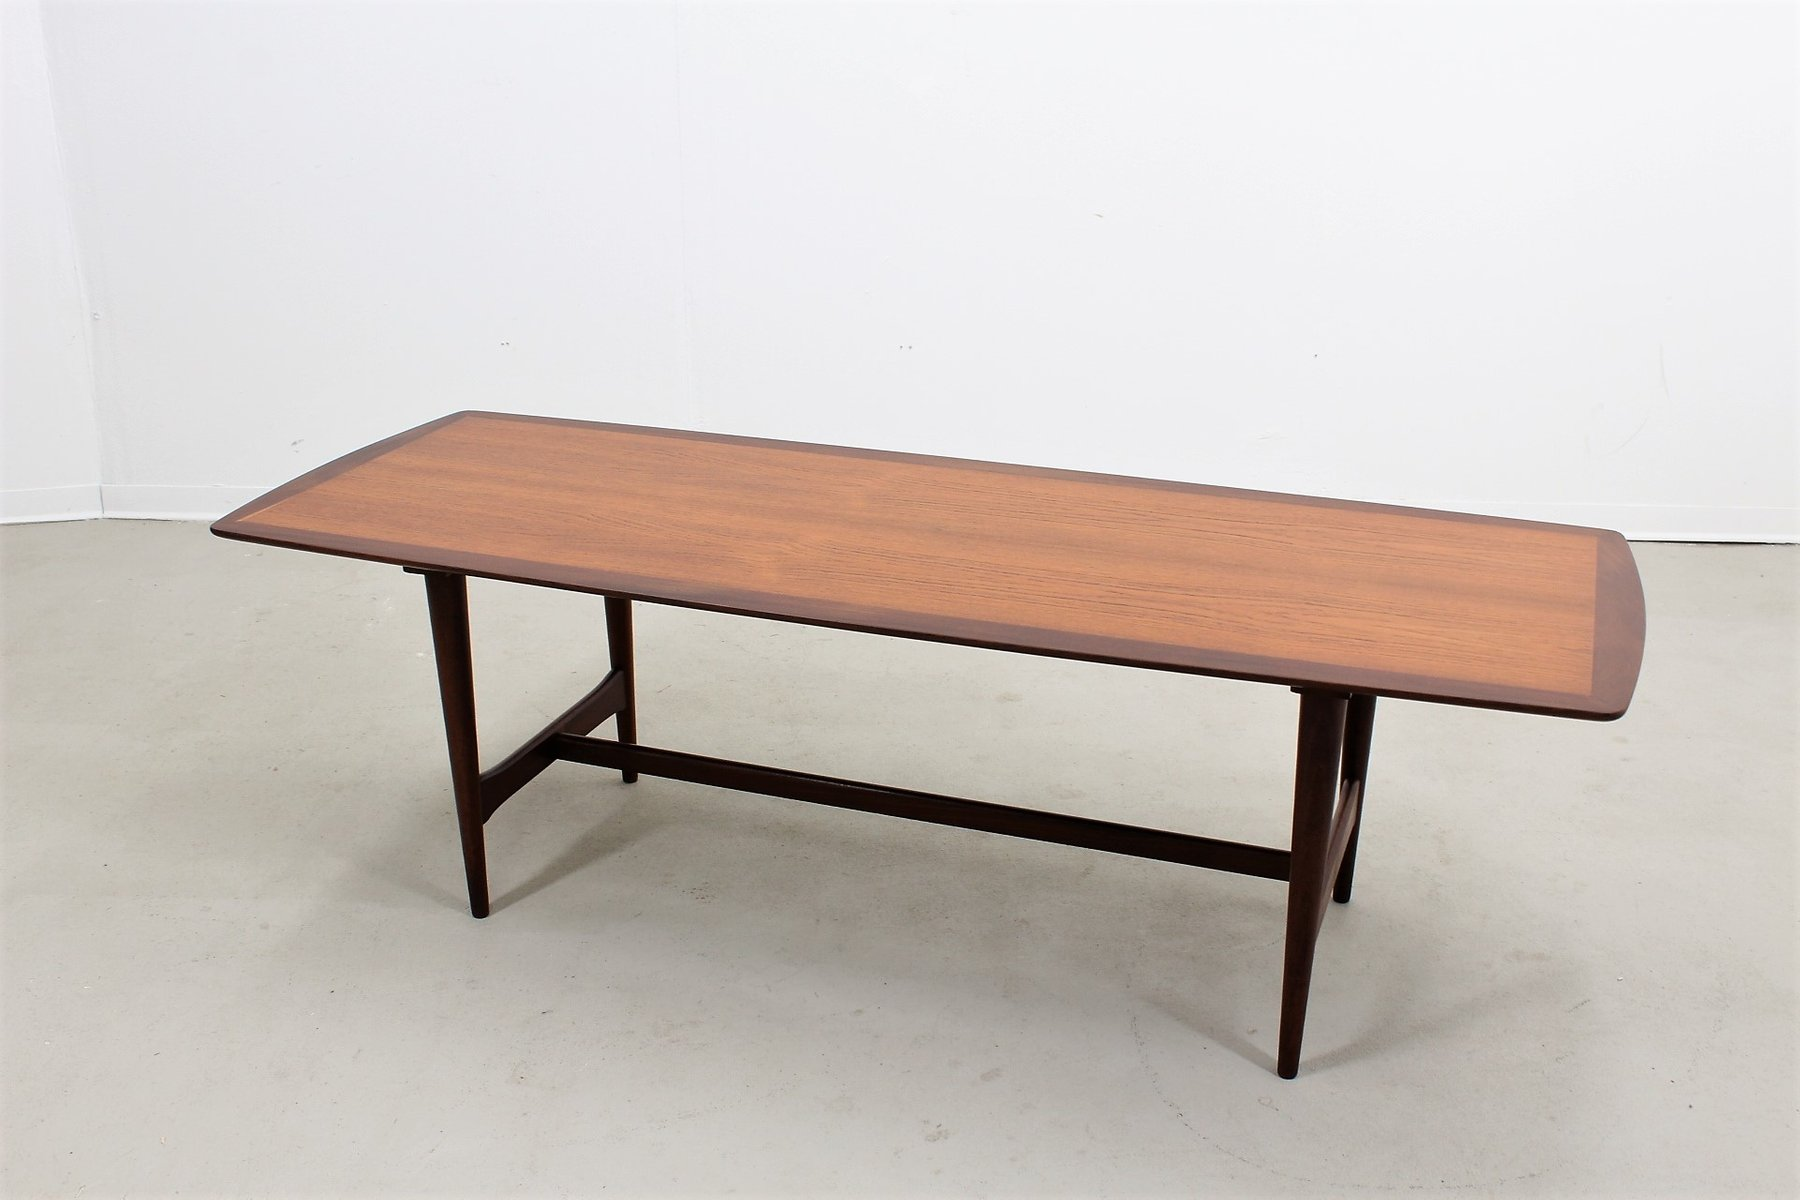 Vintage Möbel Oranienstraße Vintage Large Danish Teak Coffee Table From Ilse Möbel